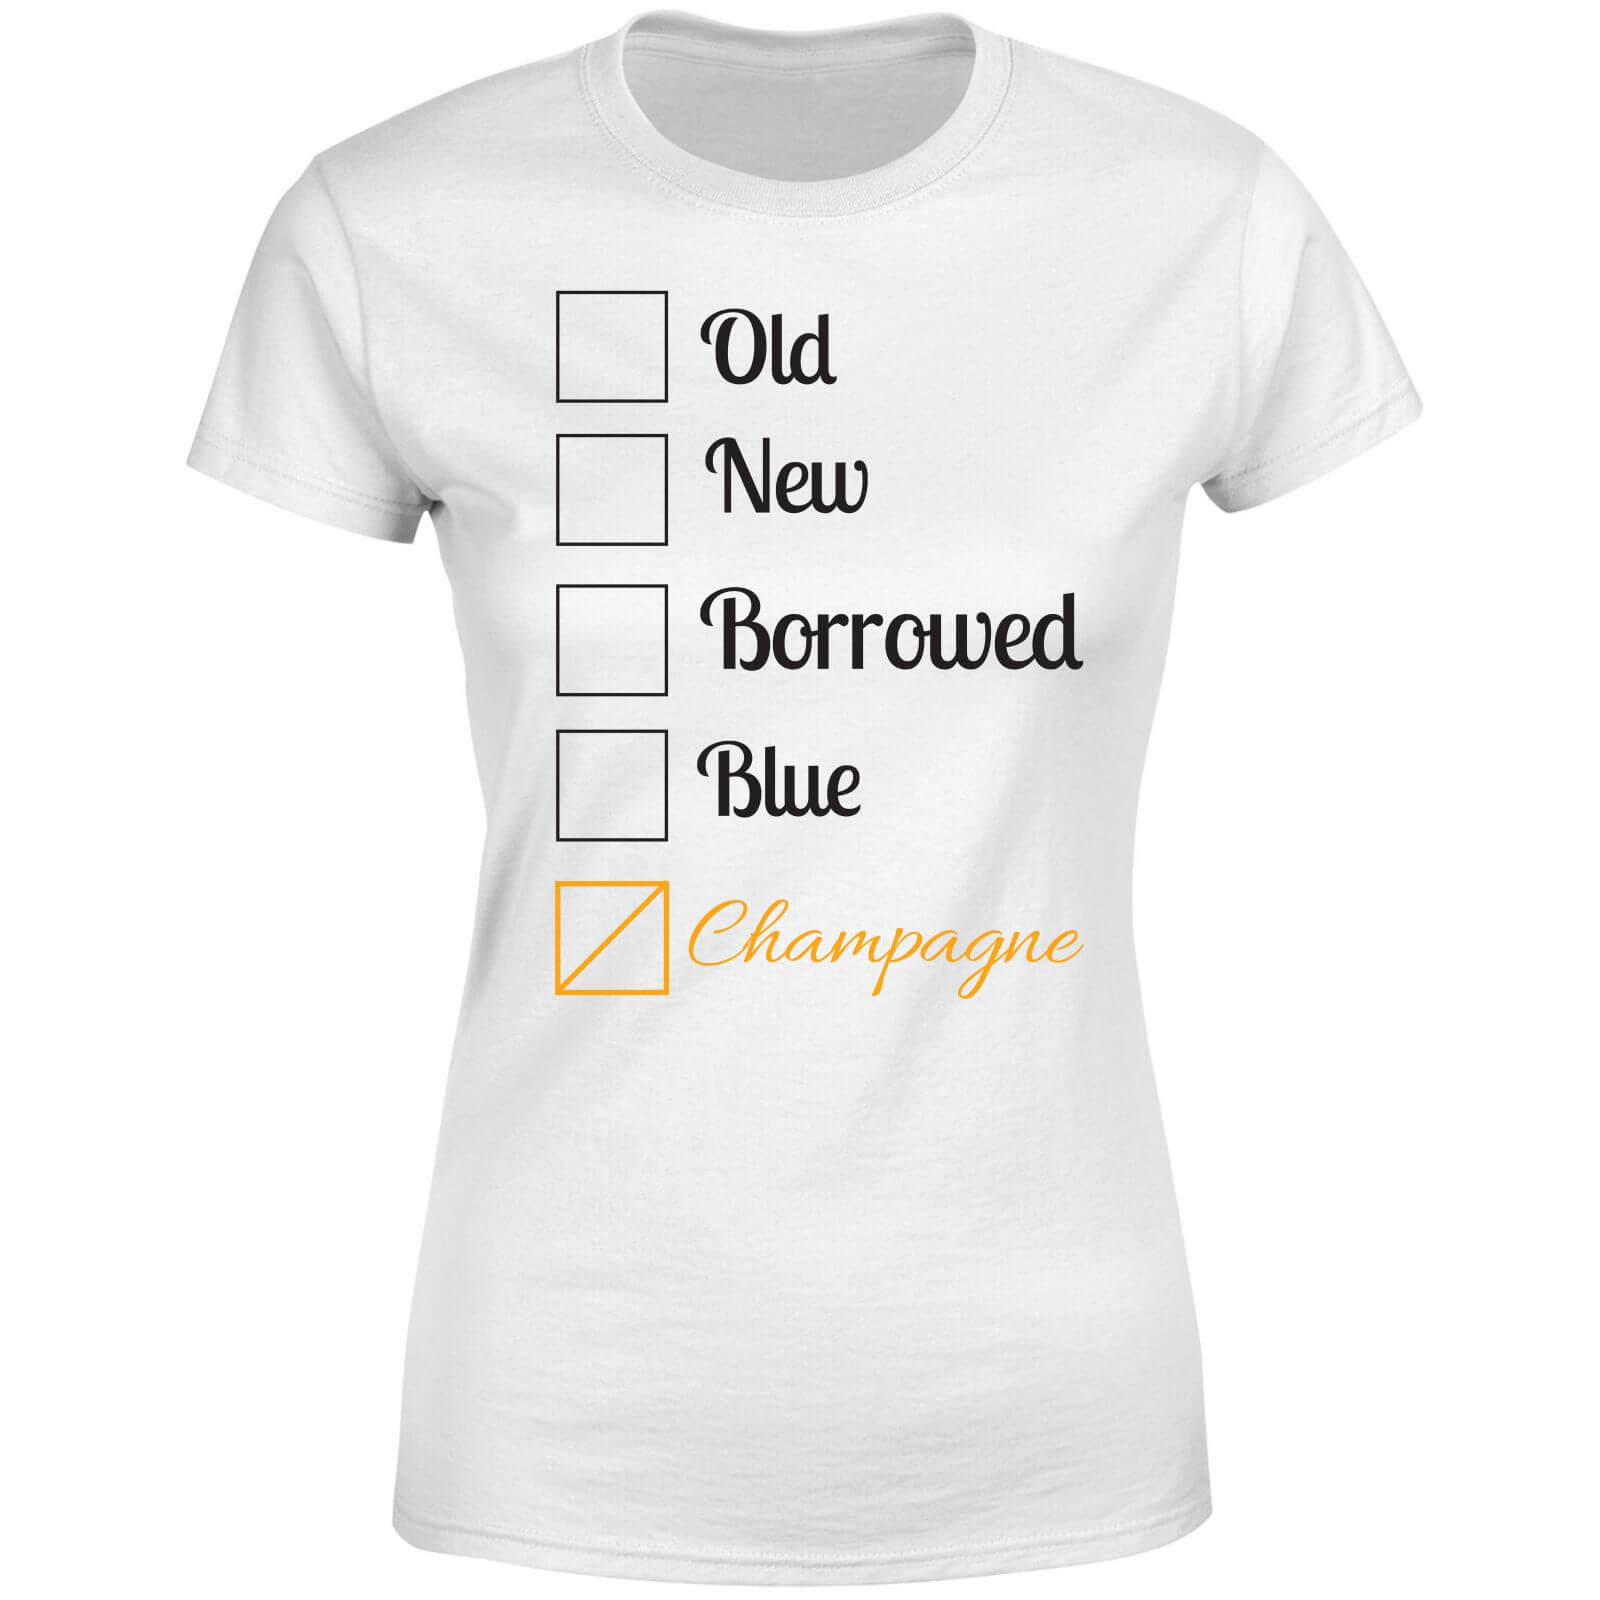 Champagne Tick Box Women